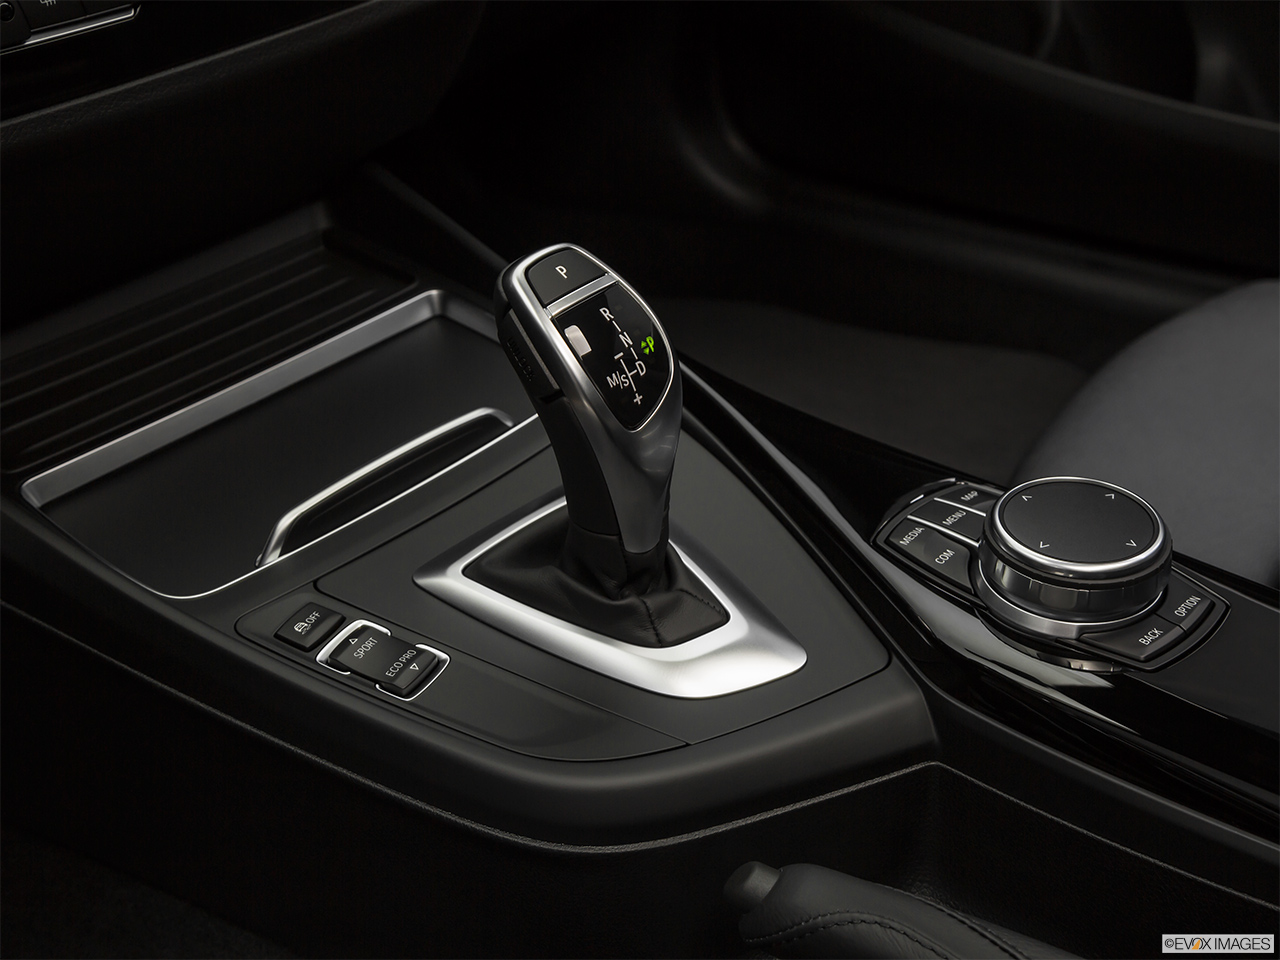 BMW 2 Series Coupe 2018, Saudi Arabia, Gear shifter/center console.